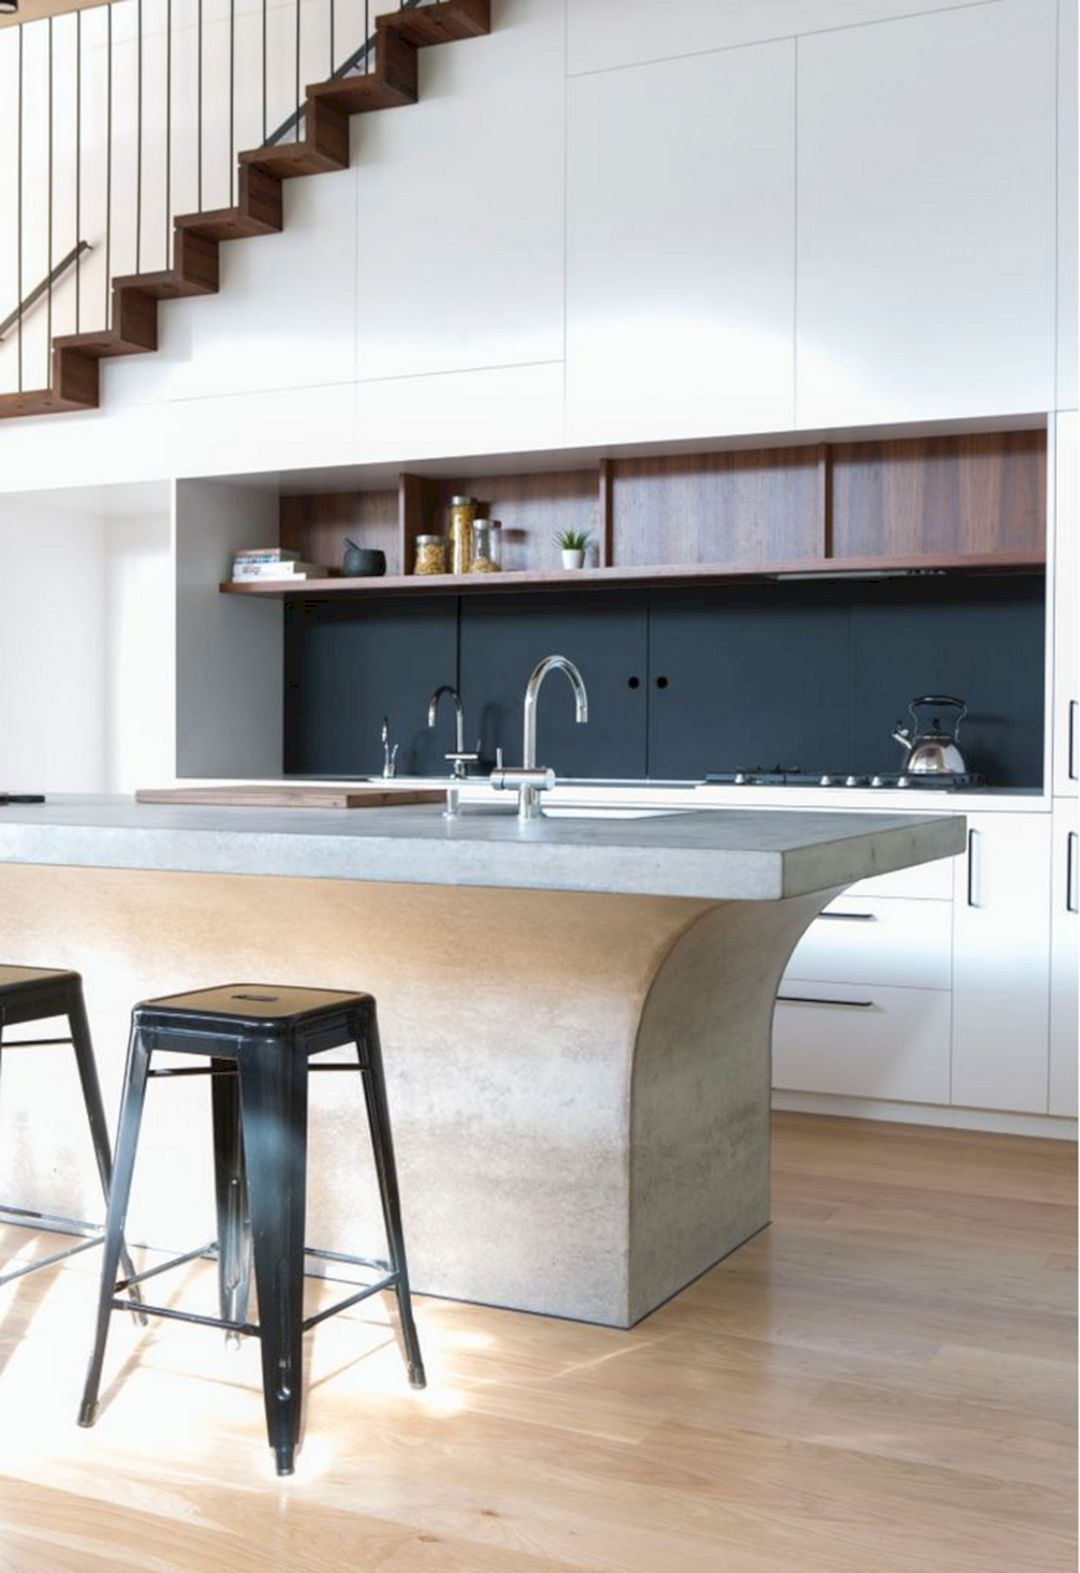 10 minimalist kitchen set design for under stairs you need to try freshouz com keukens on kitchen under stairs id=80990